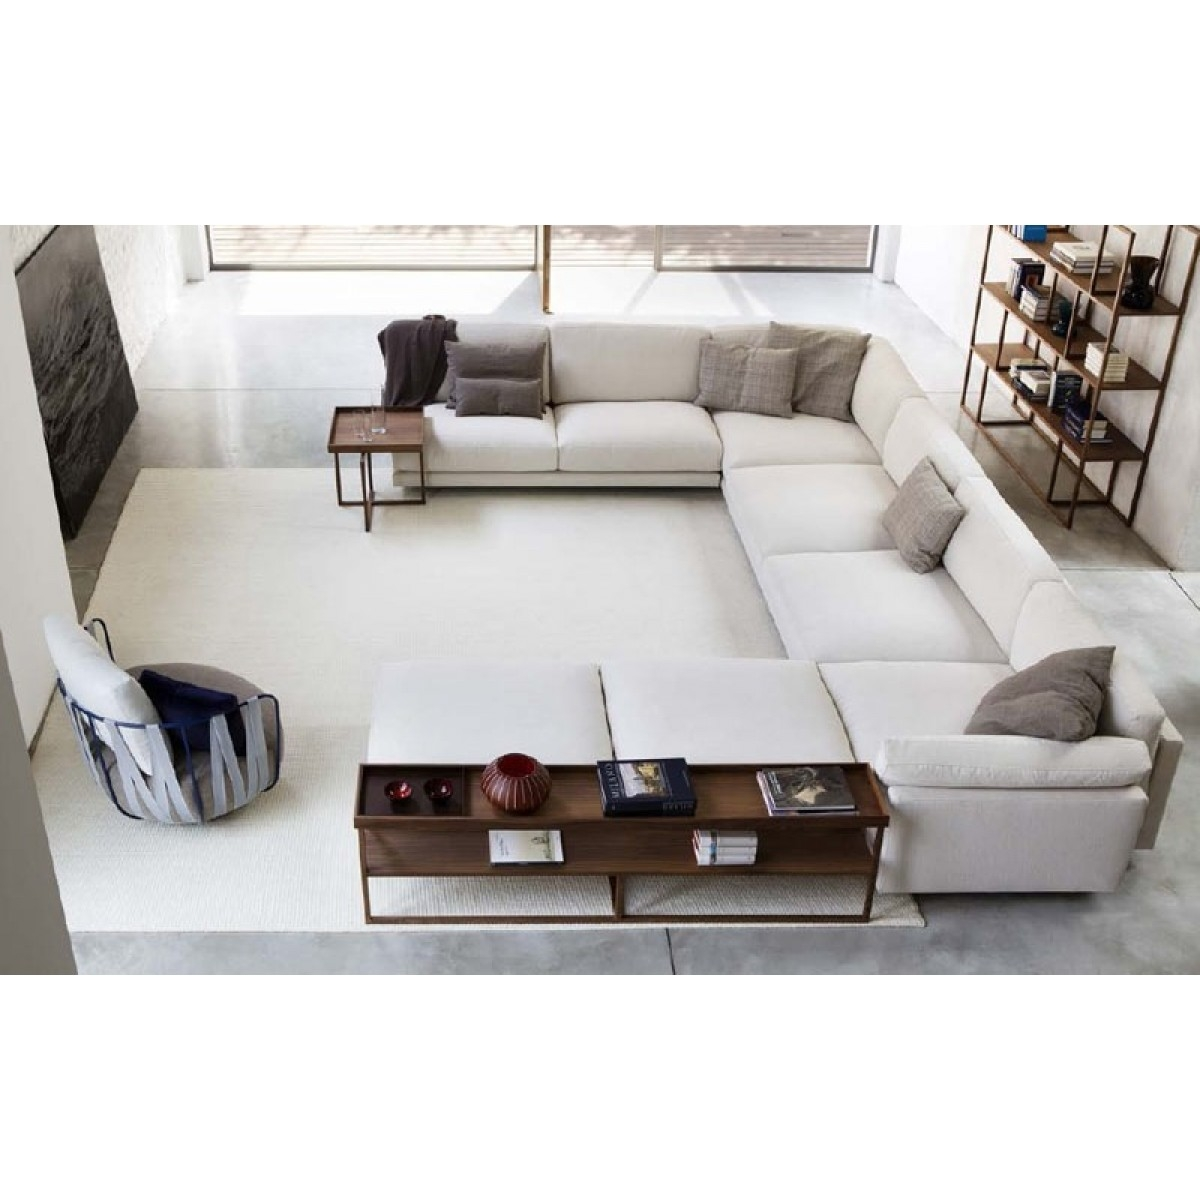 Furniture Perfect Living Furniture Ideas With Deep Seated Couch Inside Extra Wide Sectional Sofas (View 13 of 15)